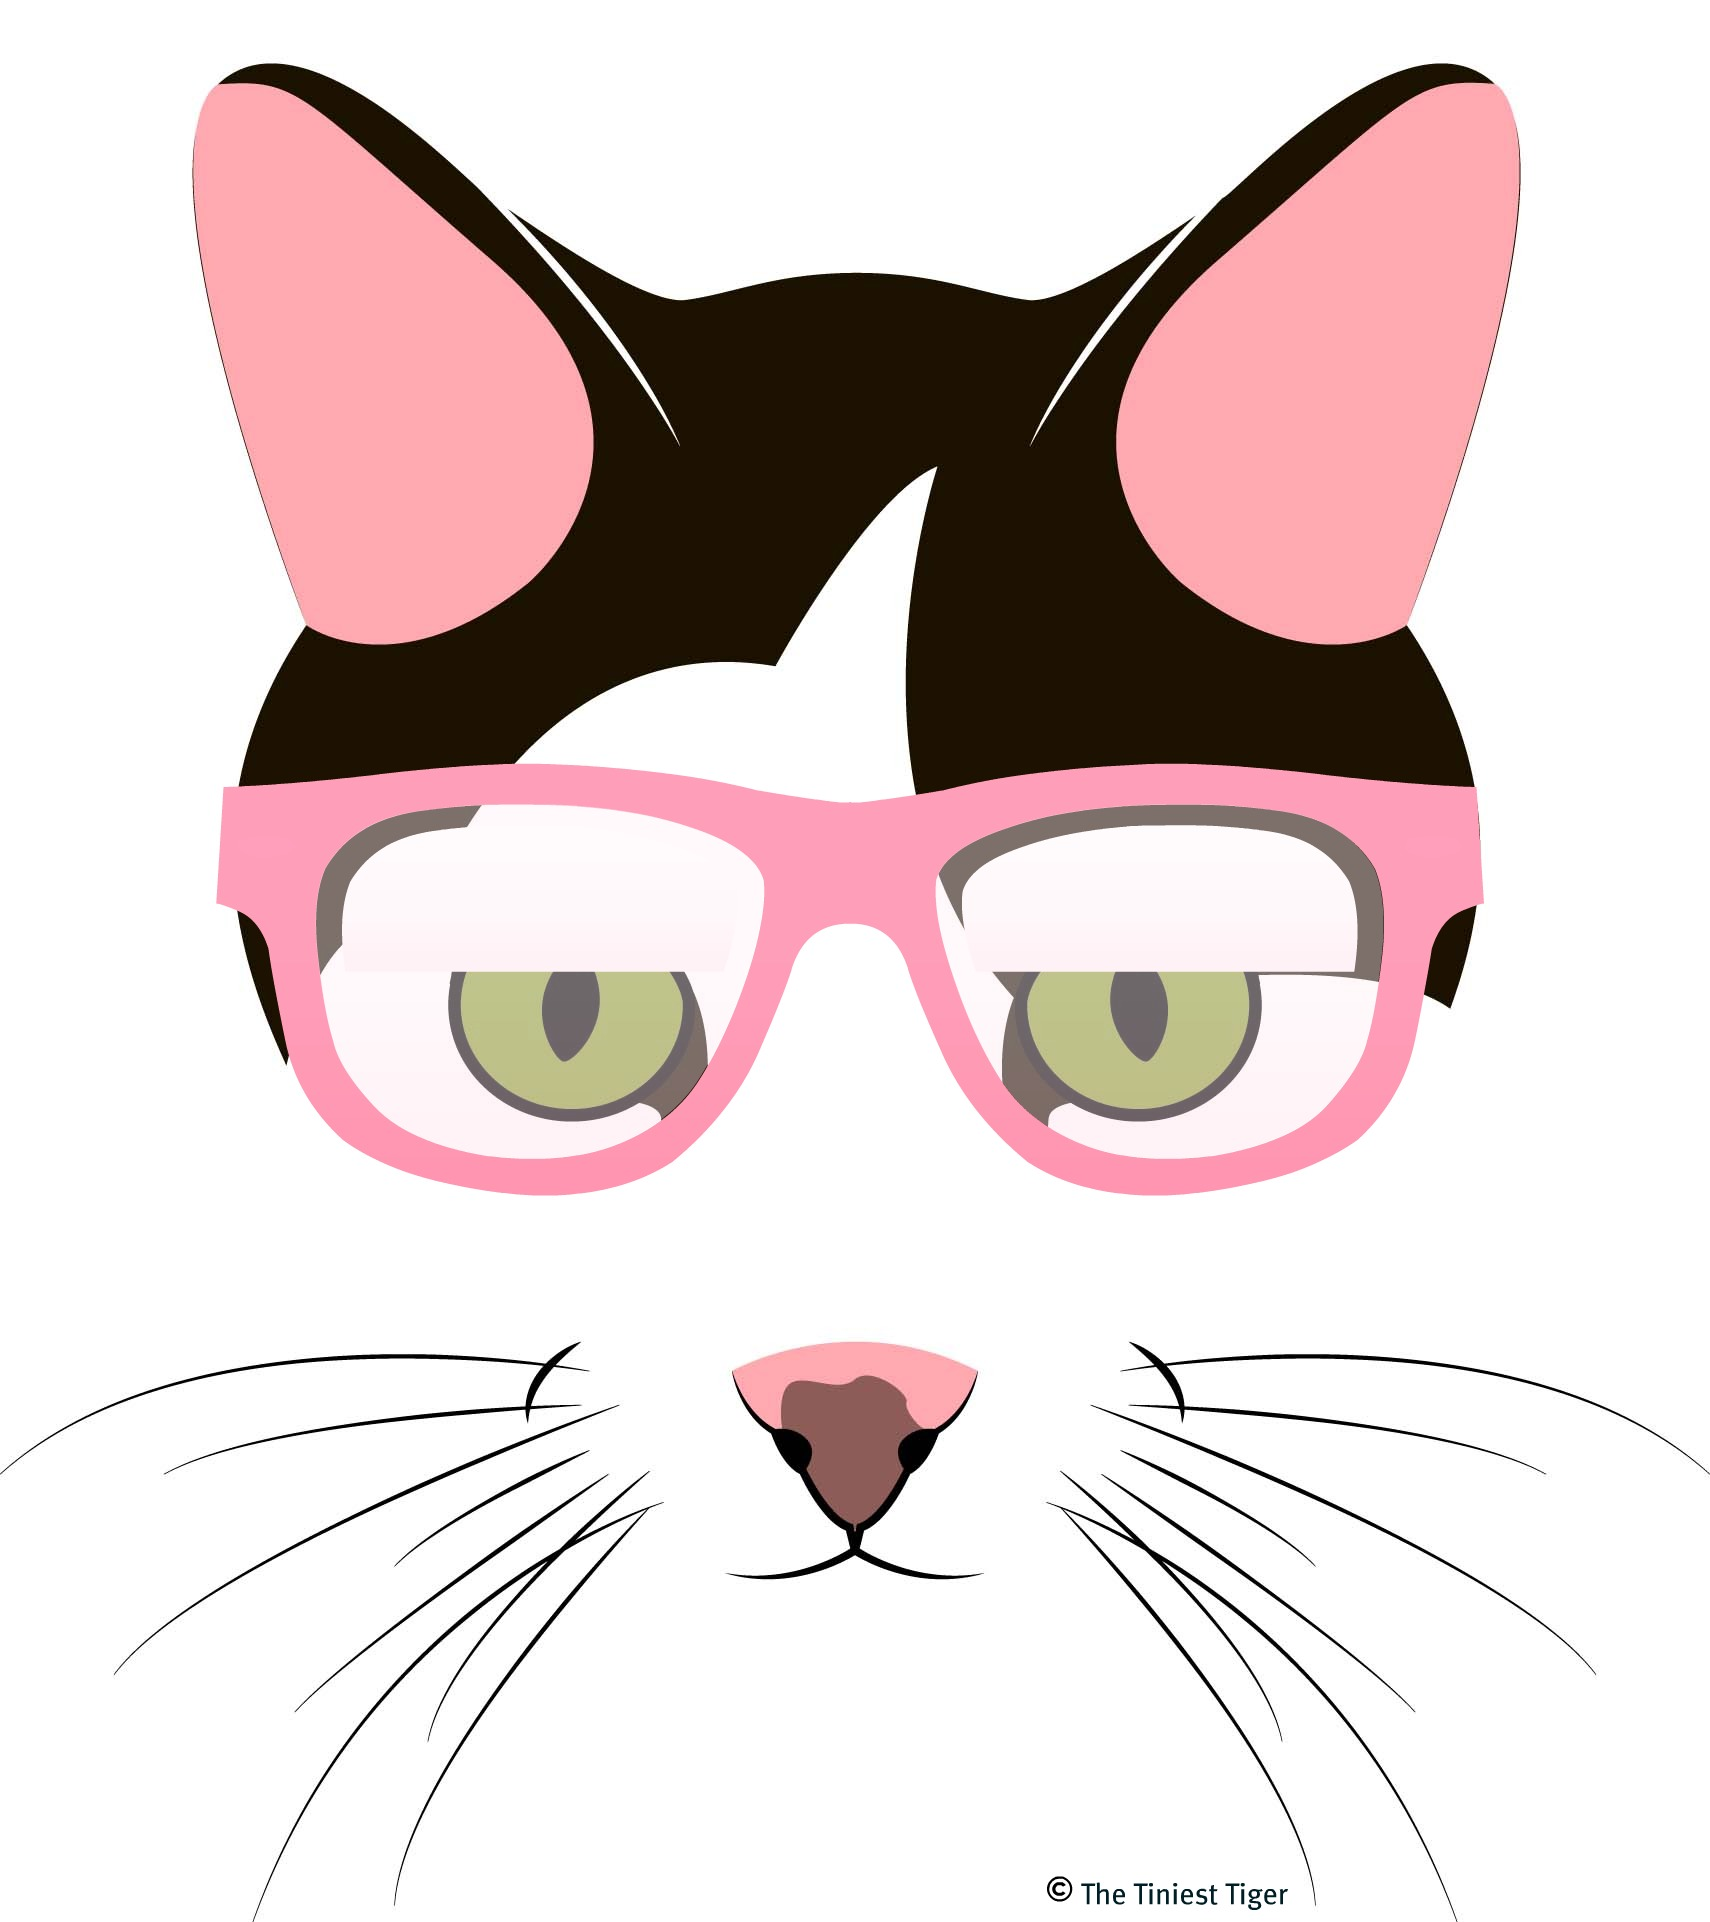 Cute Cartoon Cat With Big Eyes - ClipArt Best